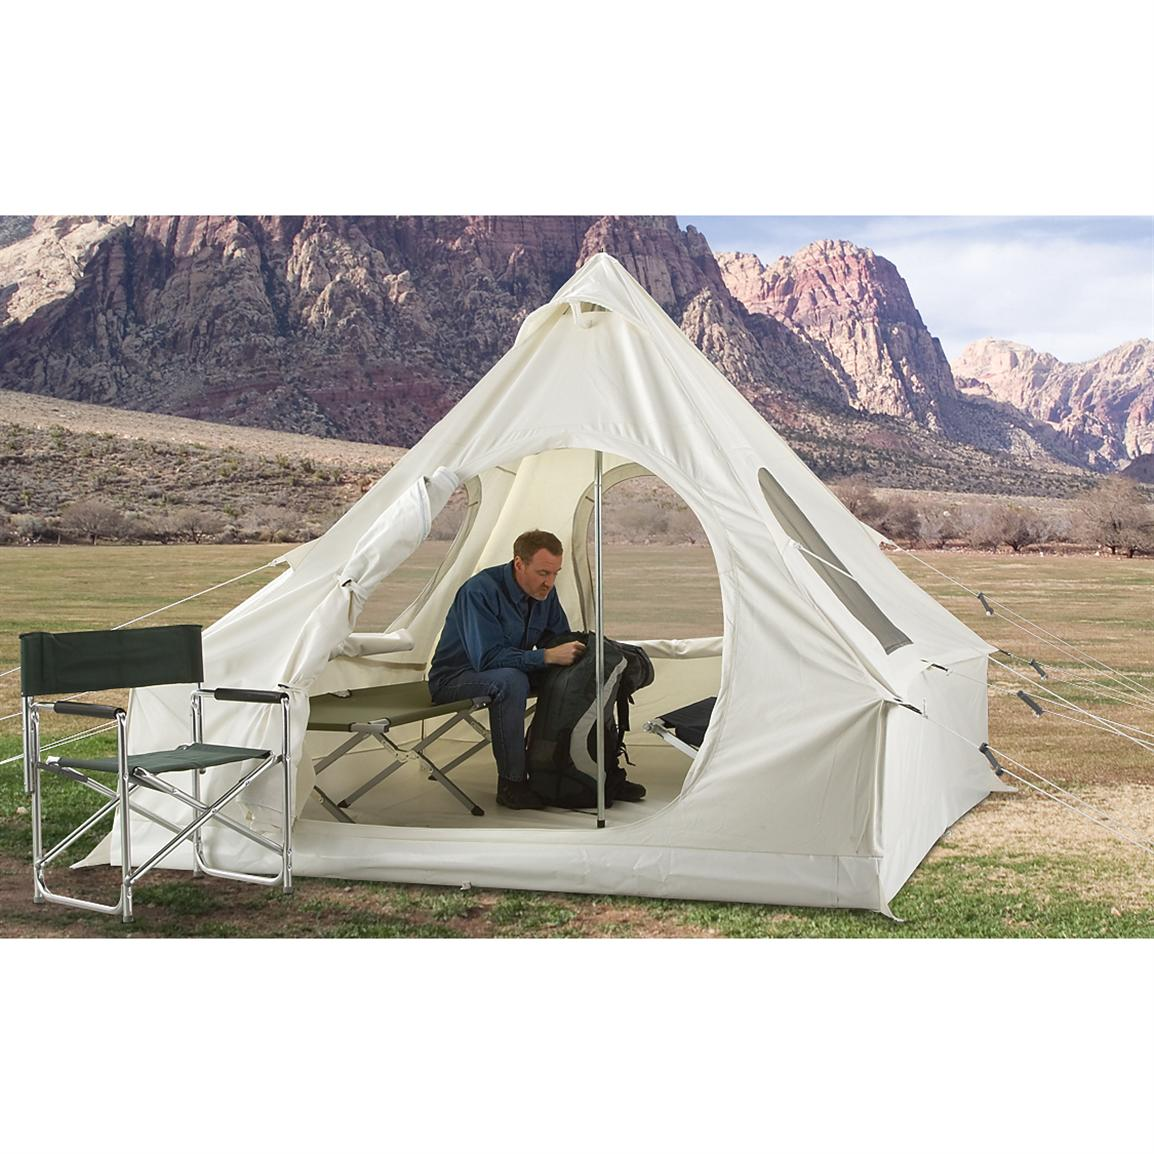 Guide gear canvas 8x8 39 lodge tent off white 200326 for Canvas wall tent reviews